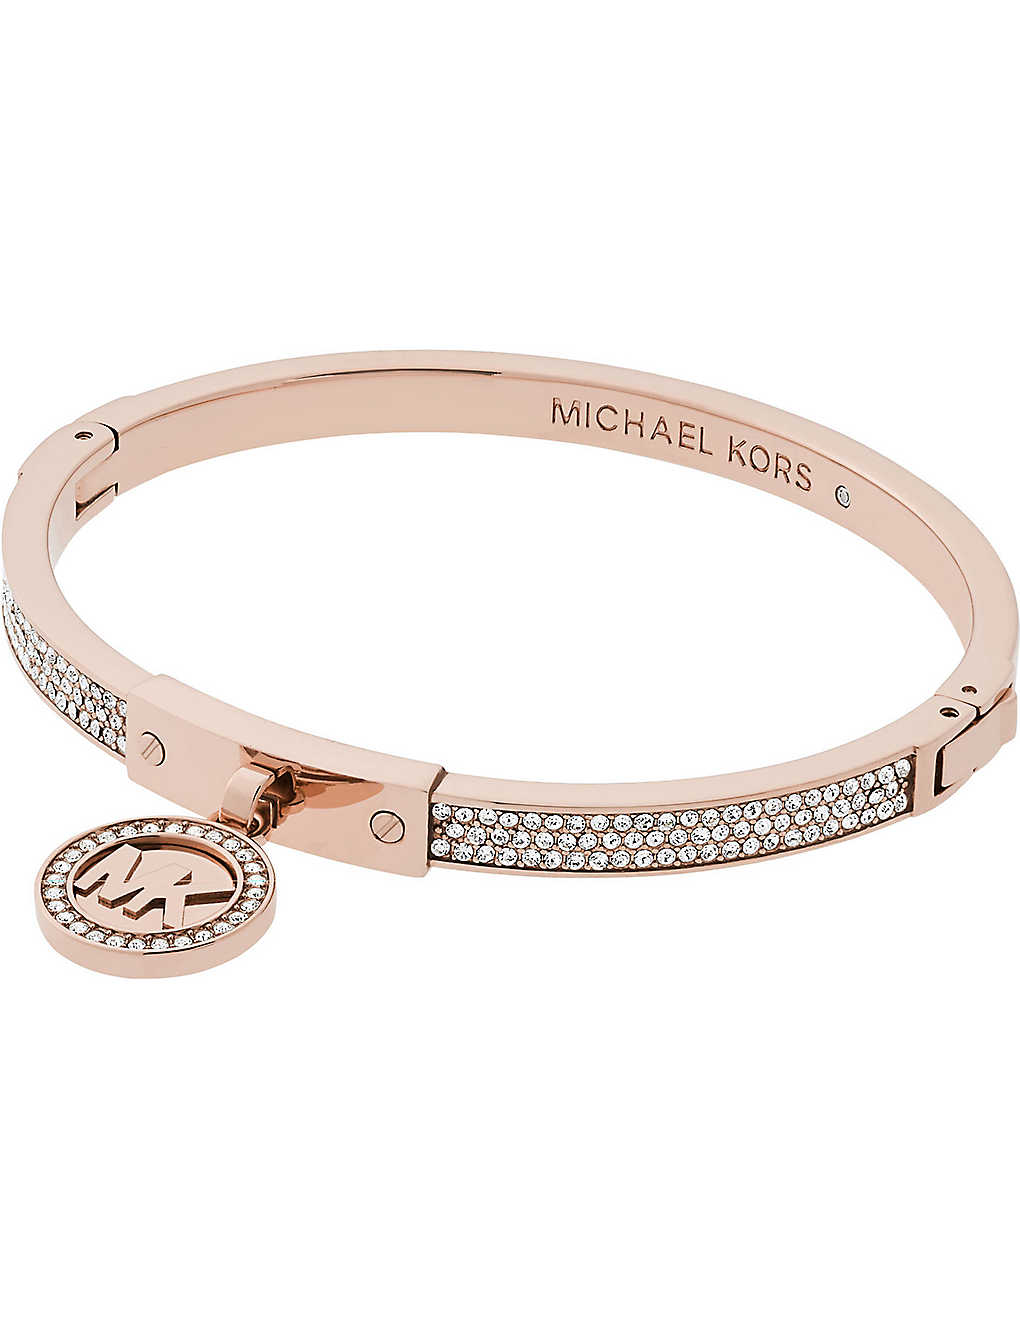 f69c73924cab MICHAEL KORS - Fulton rose-gold and pavé hinge bangle bracelet ...